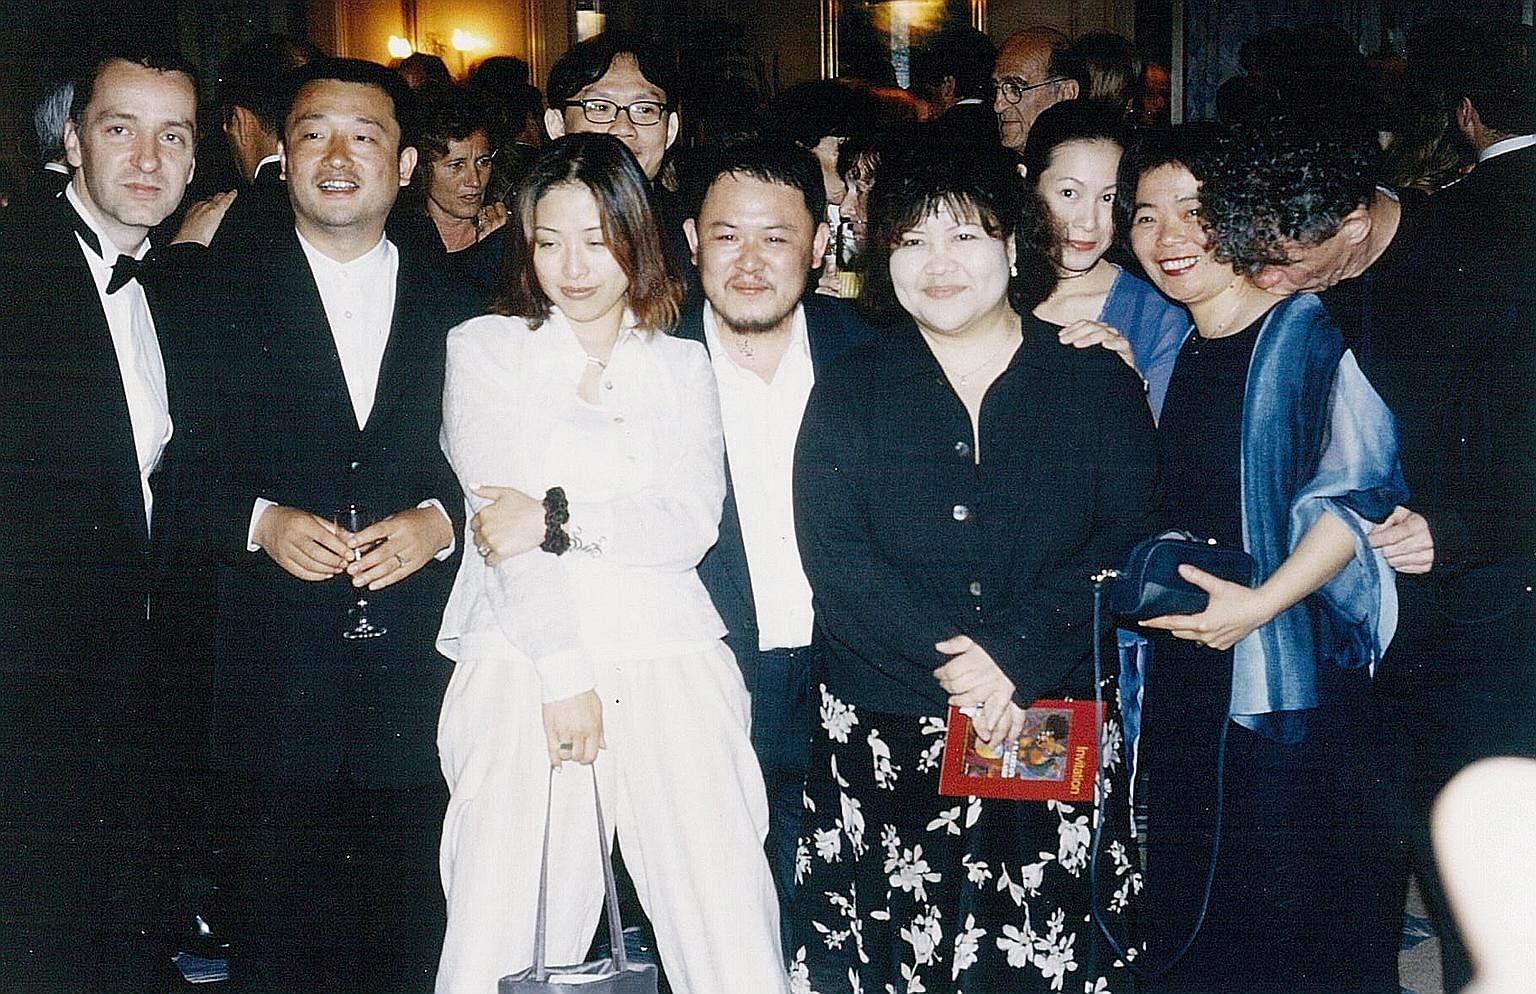 Mr Jeune (third from left) with Cannes' former artistic director Gilles Jacob (fourth from left) in the 1990s.